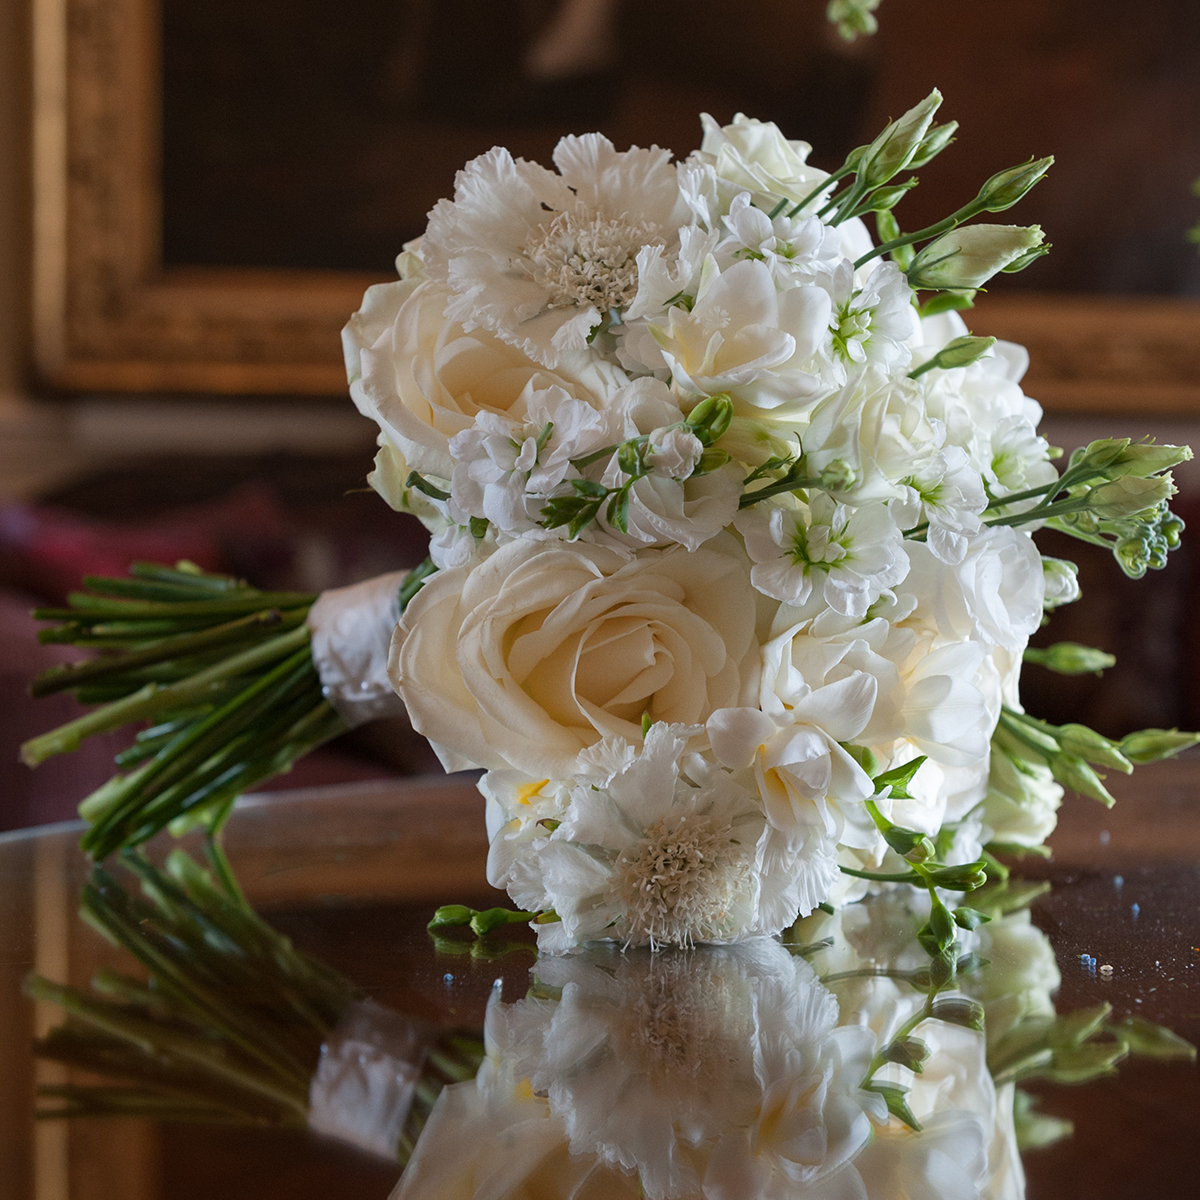 Wedding Bouquets Fresh Flowers : Bridal bouquets by get knotted fresh and beautiful